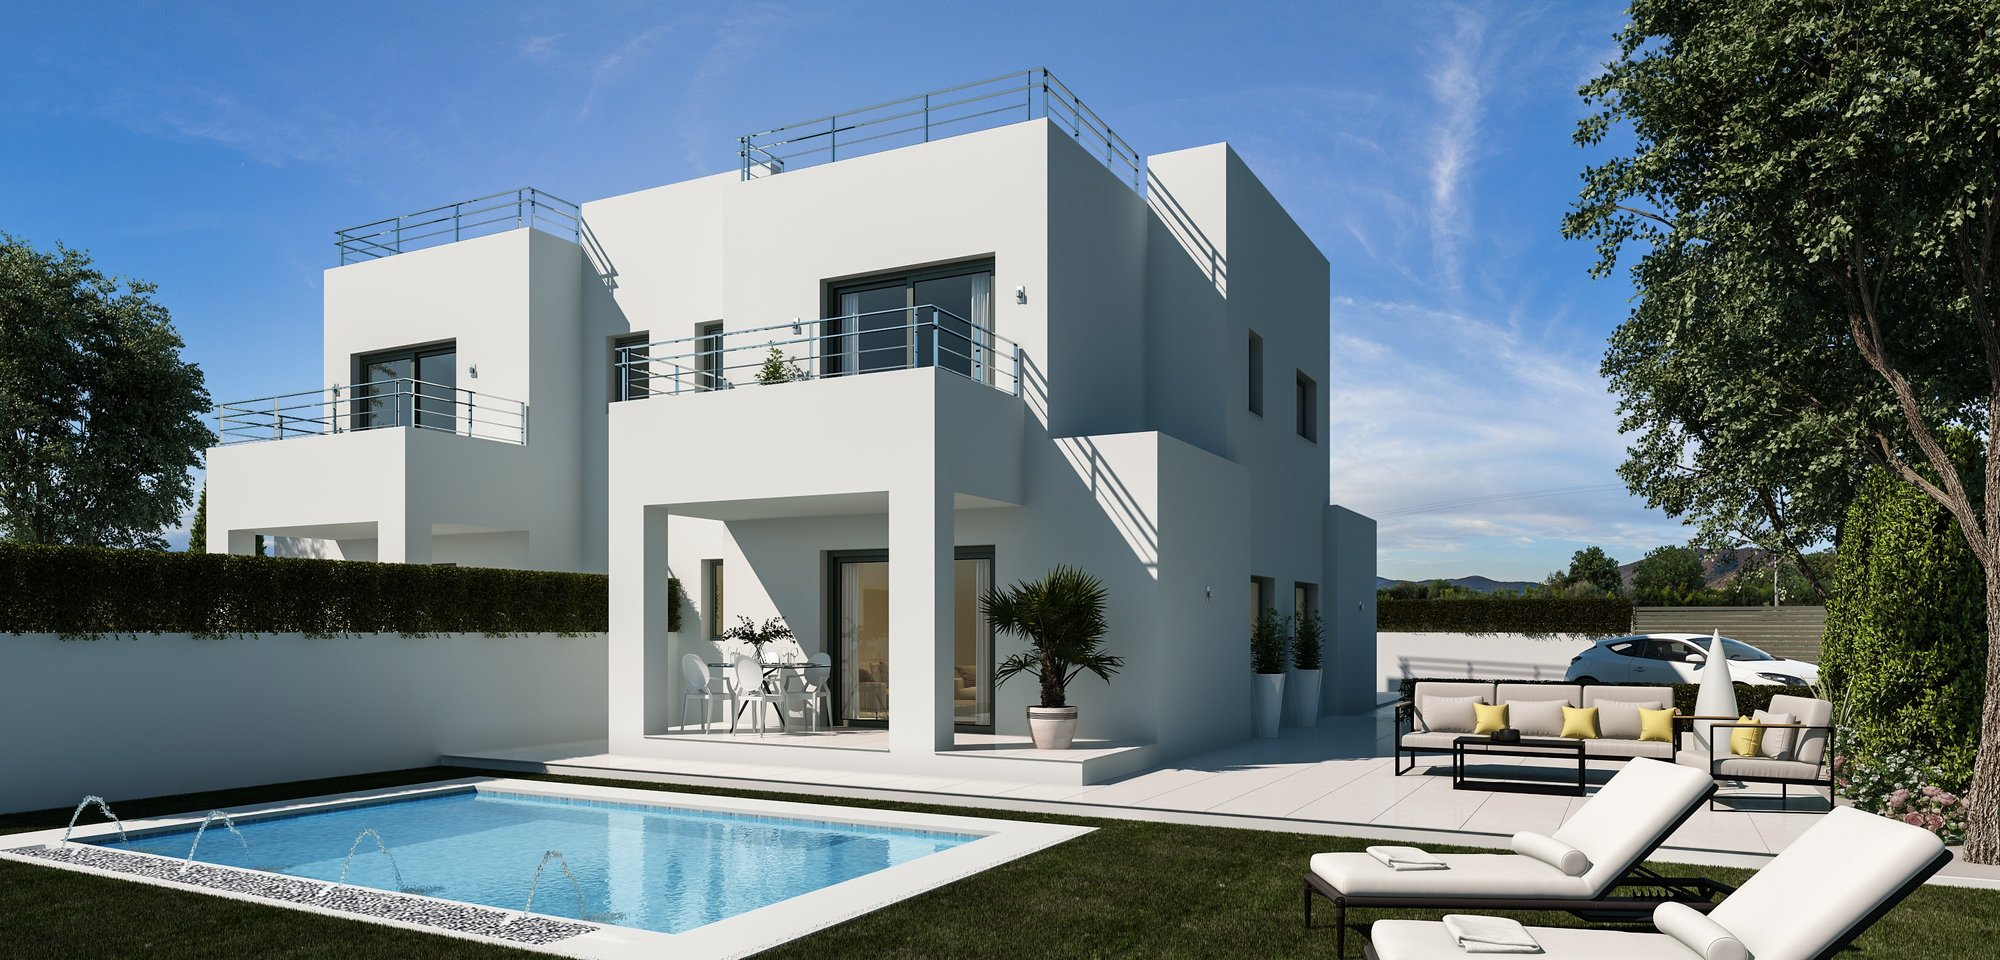 Townhouse for sale in El Pinet